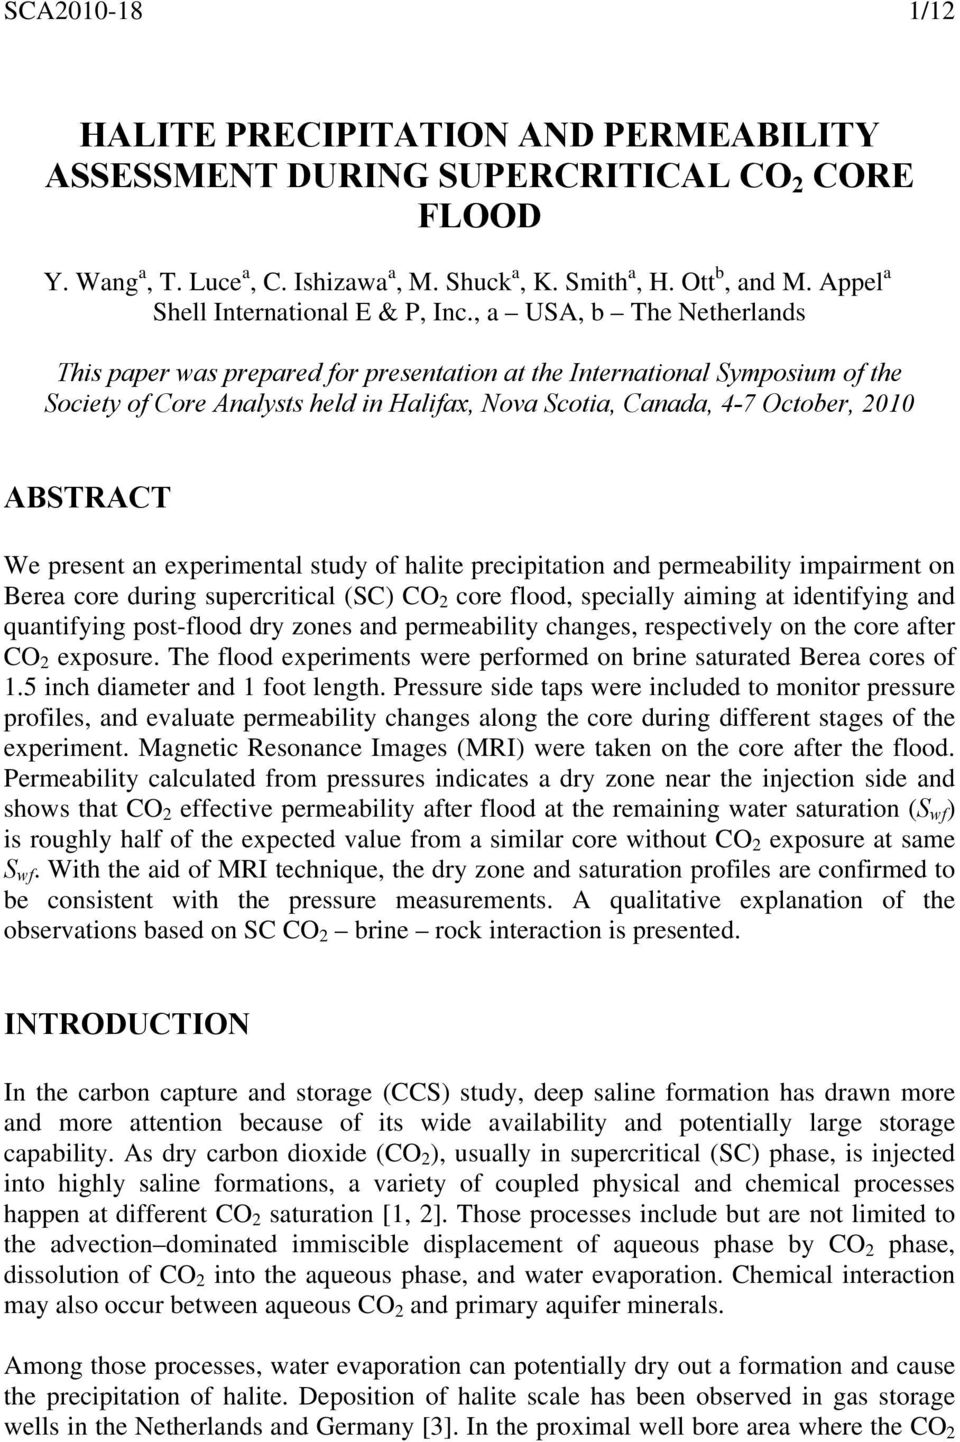 , a USA, b The Netherlands This paper was prepared for presentation at the International Symposium of the Society of Core Analysts held in Halifax, Nova Scotia, Canada, 4-7 October, 2010 ABSTRACT We